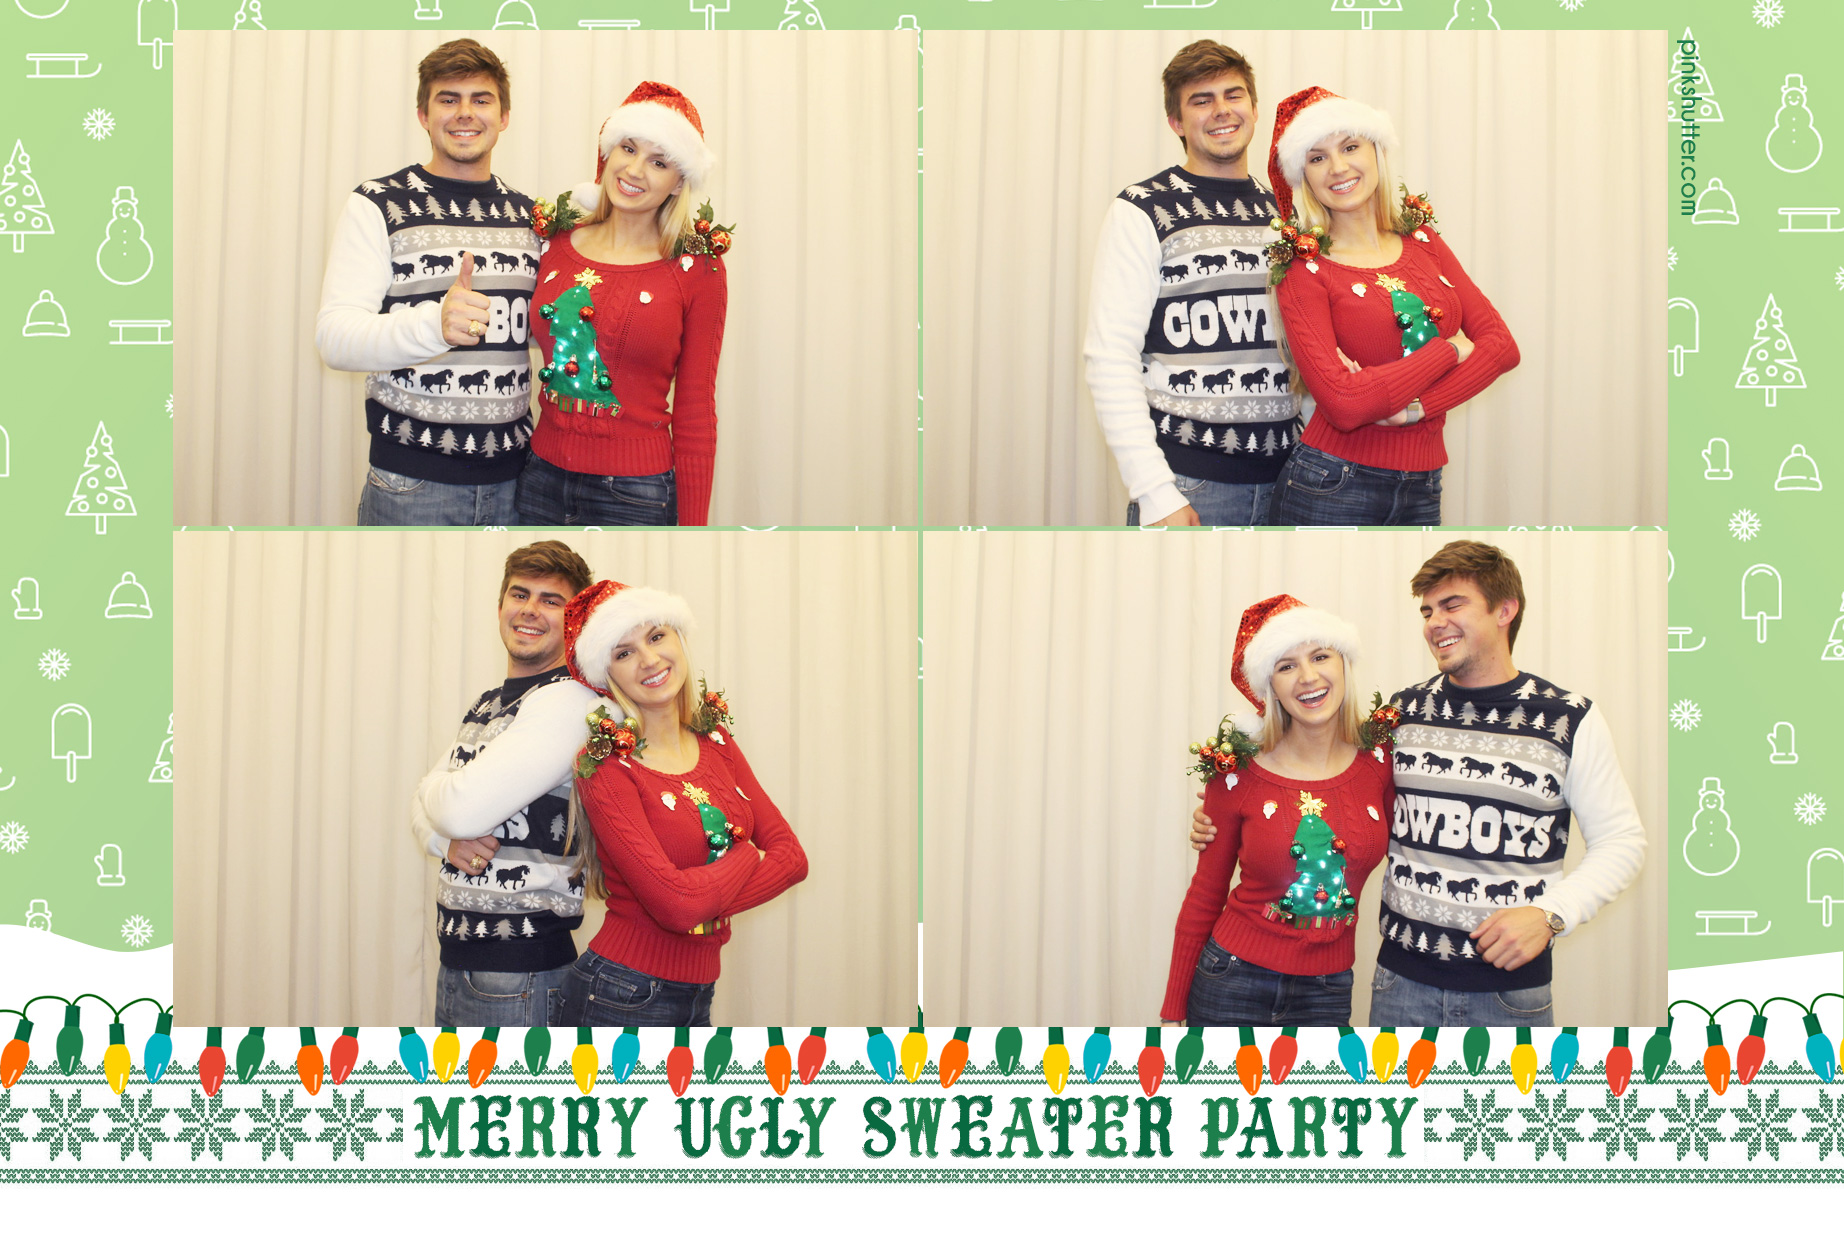 Photo Booth Print with Ugly Sweater Design